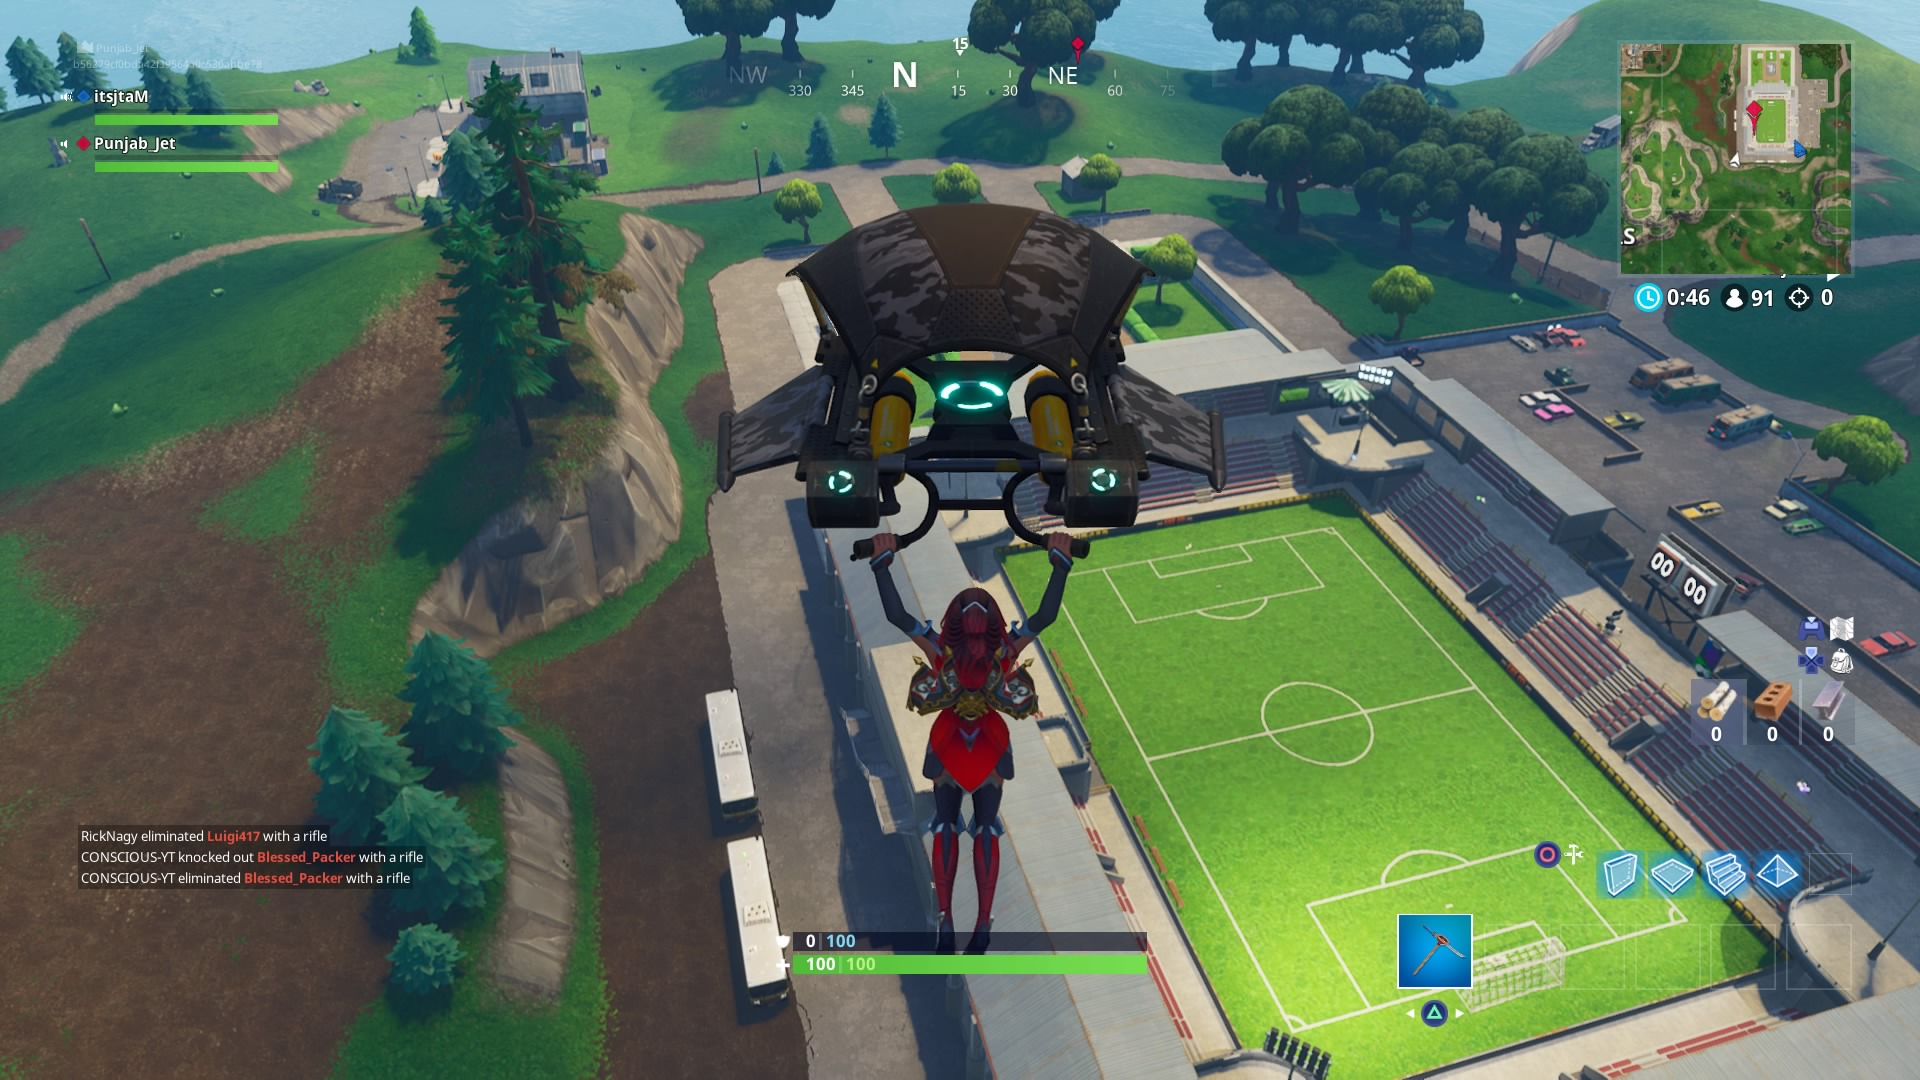 fortnite soccer stadium widescreen computer background 1466